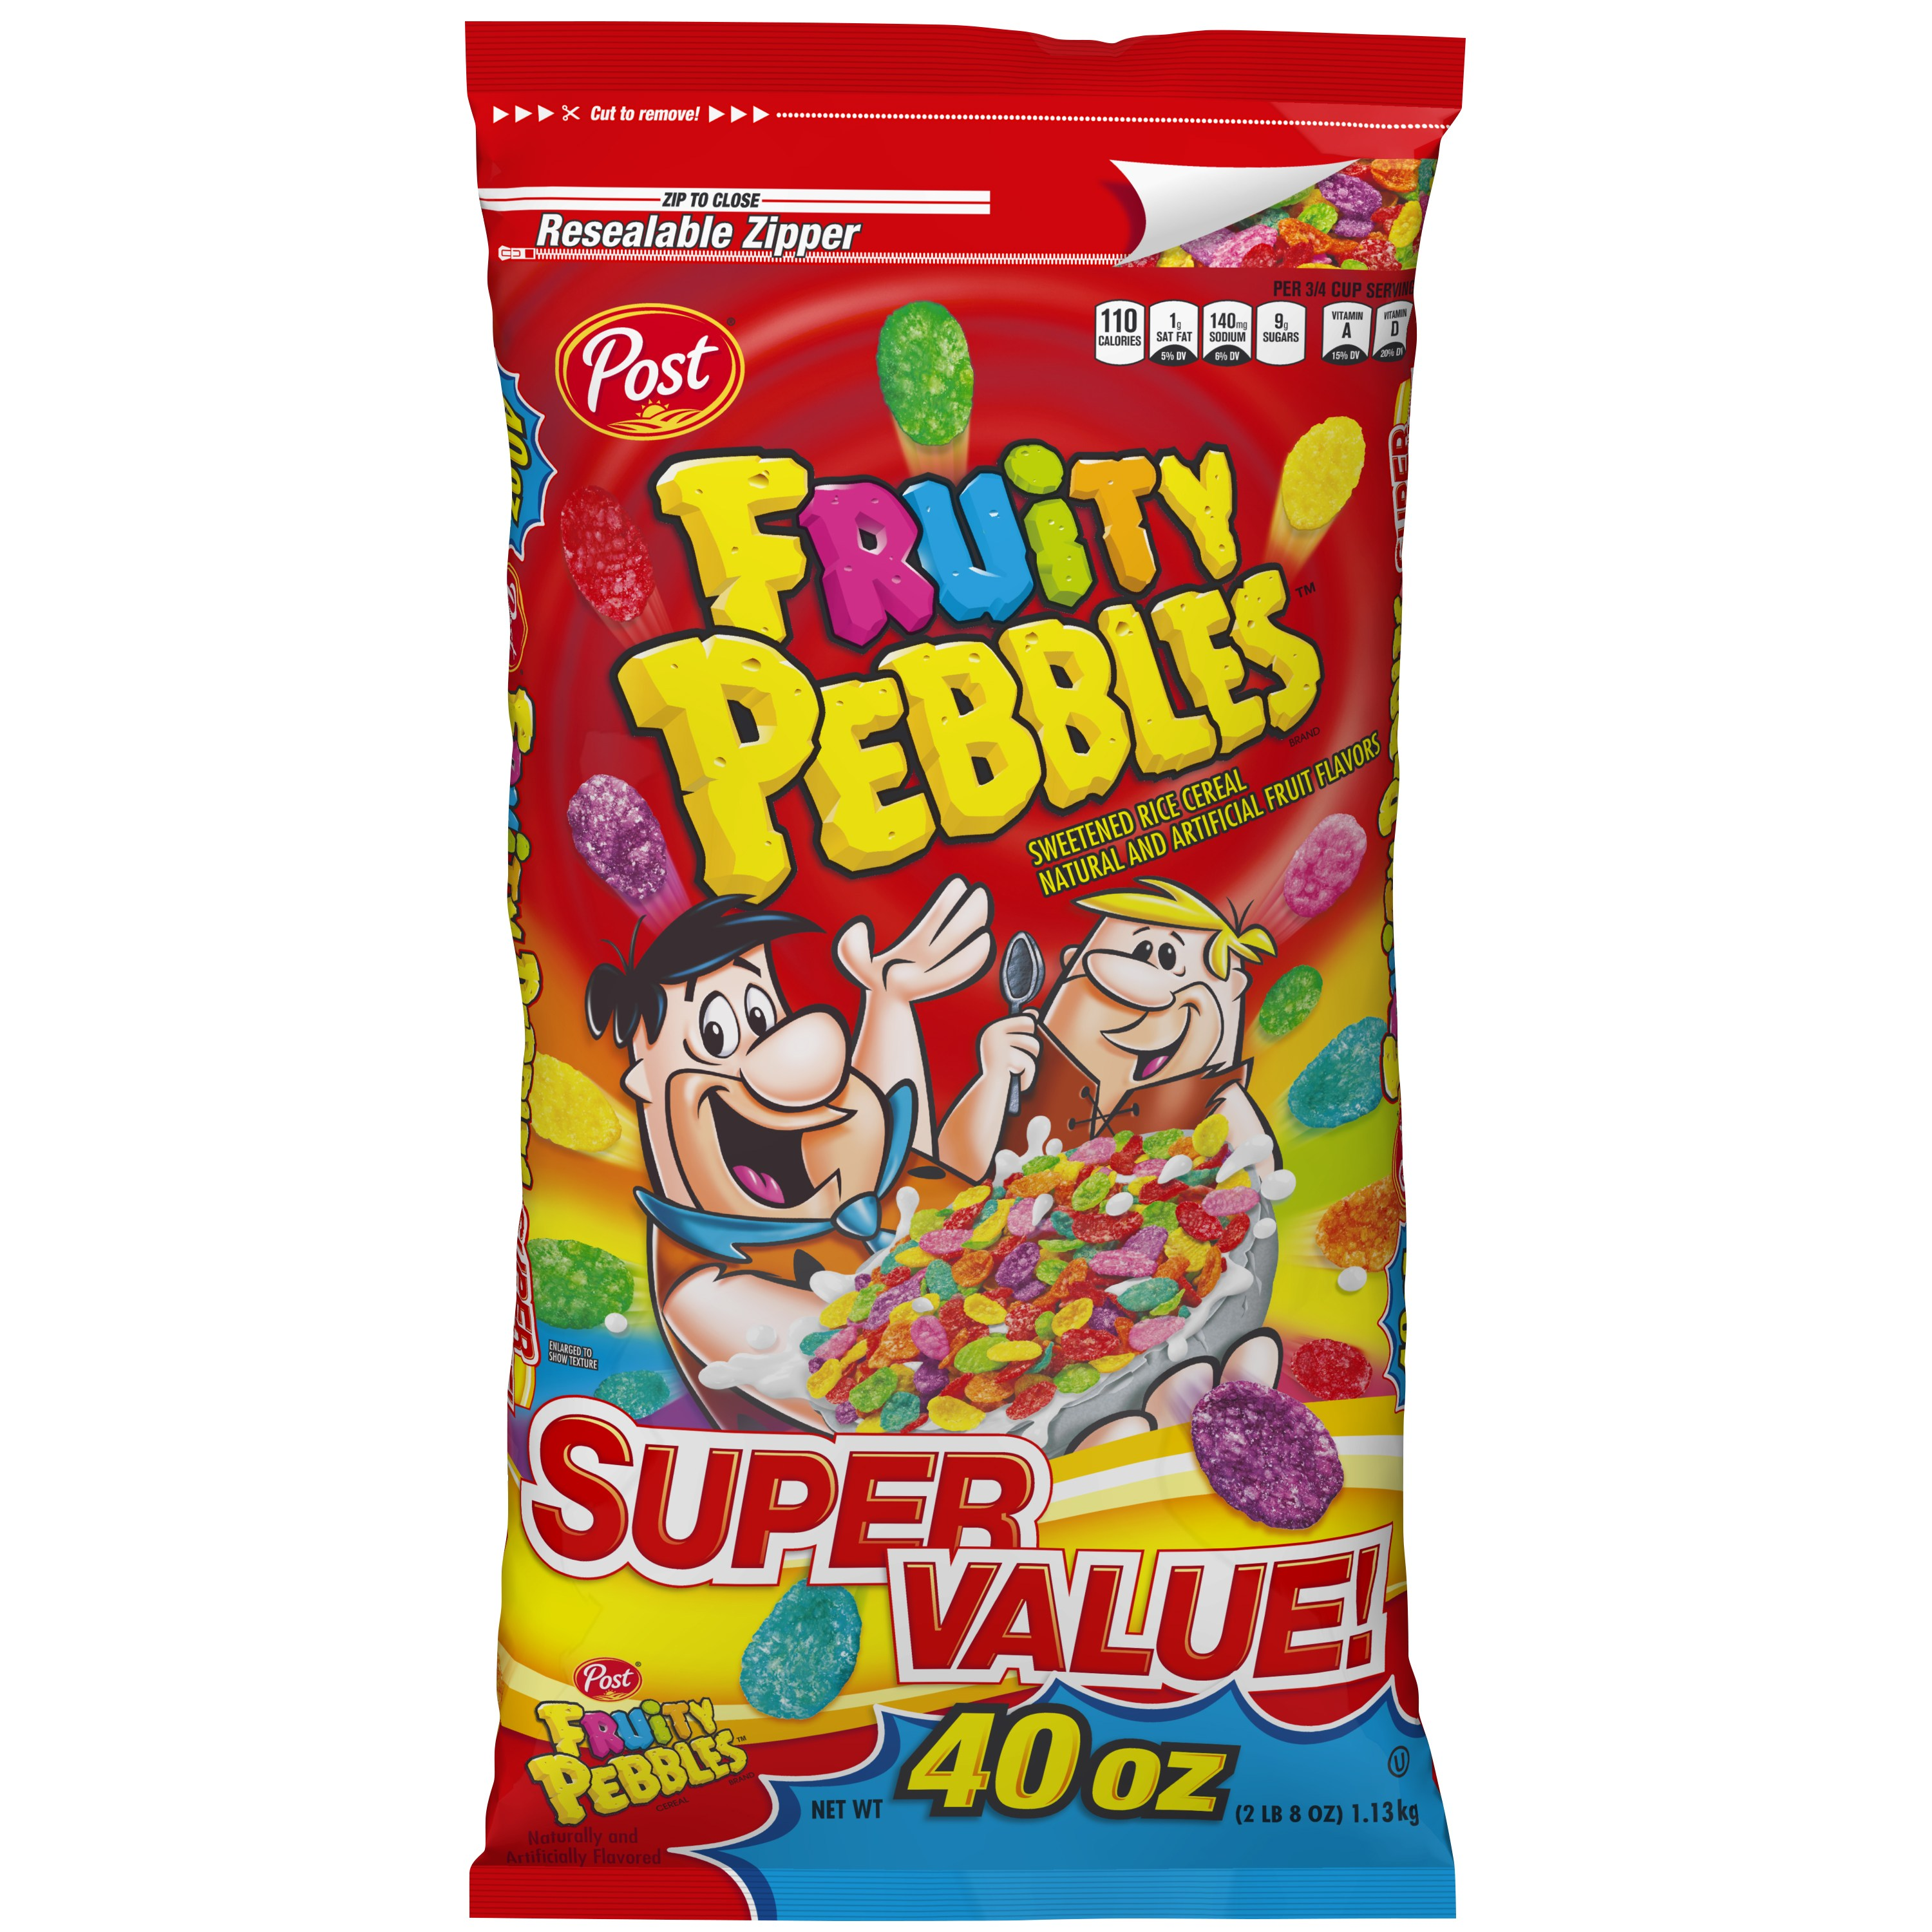 Post Fruity Pebbles Cereal 40 oz. bag